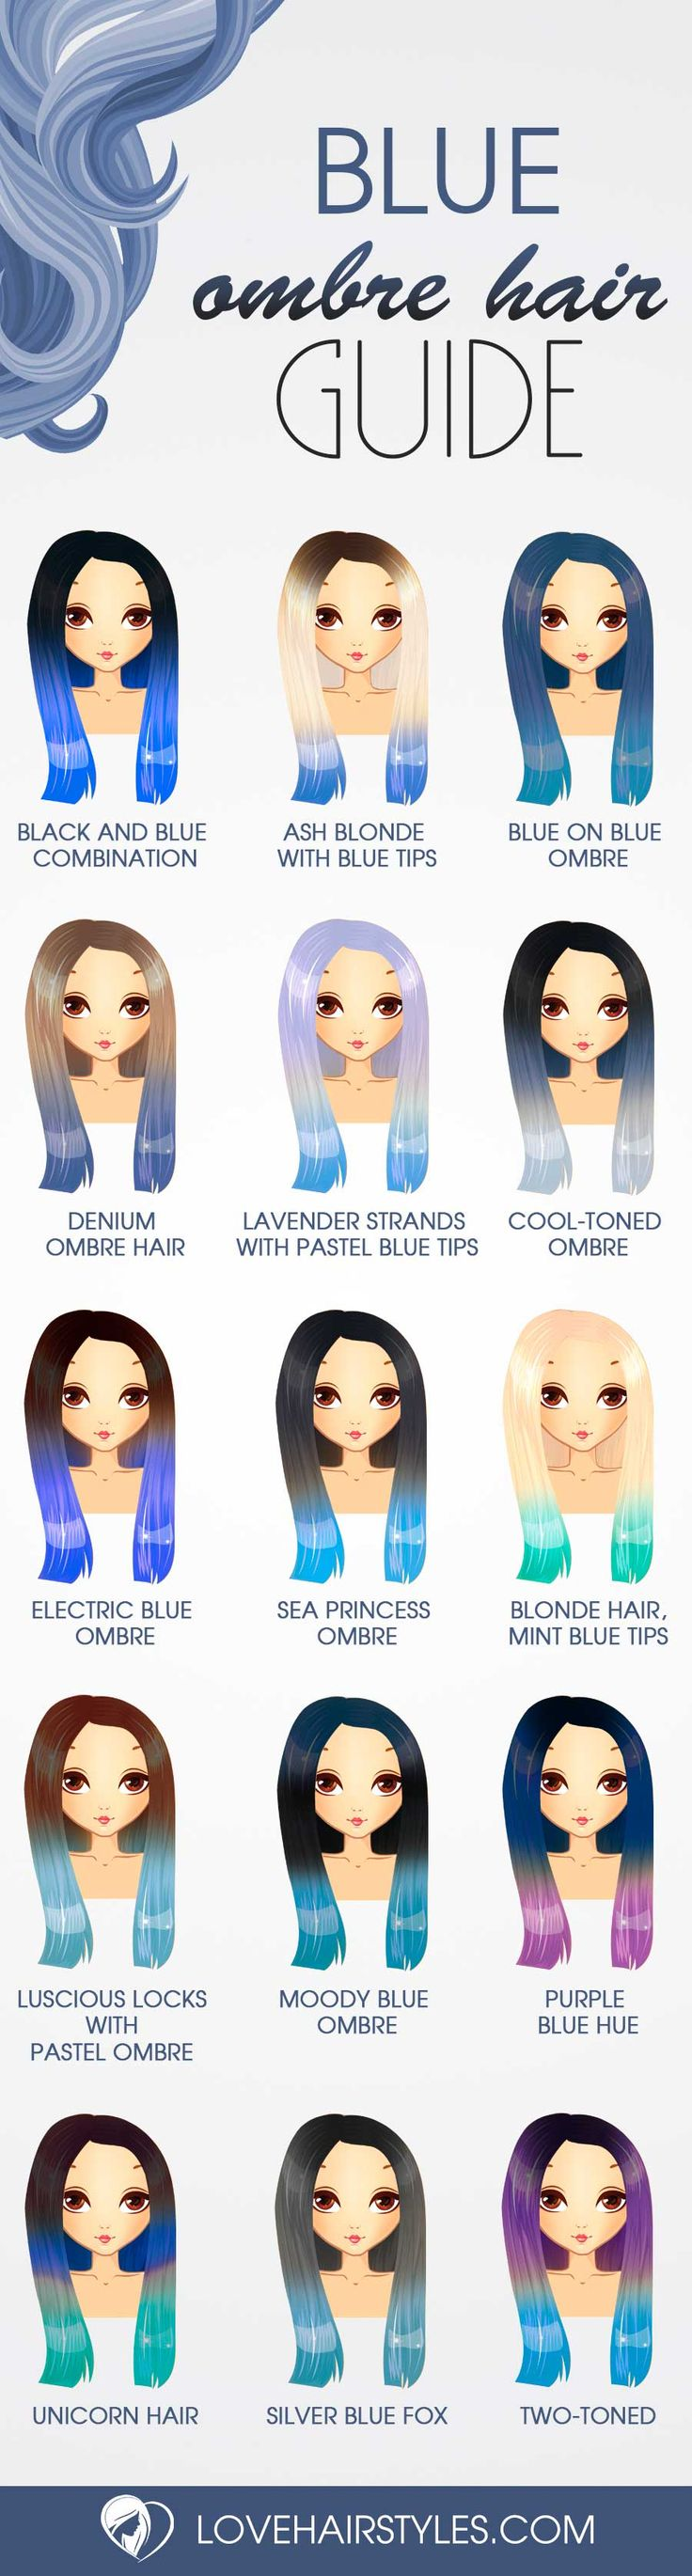 Stunning Styles for Blue Ombre Hair That Will Make You Flip! ★ See more: http://lovehairstyles.com/stunning-blue-ombre-hai